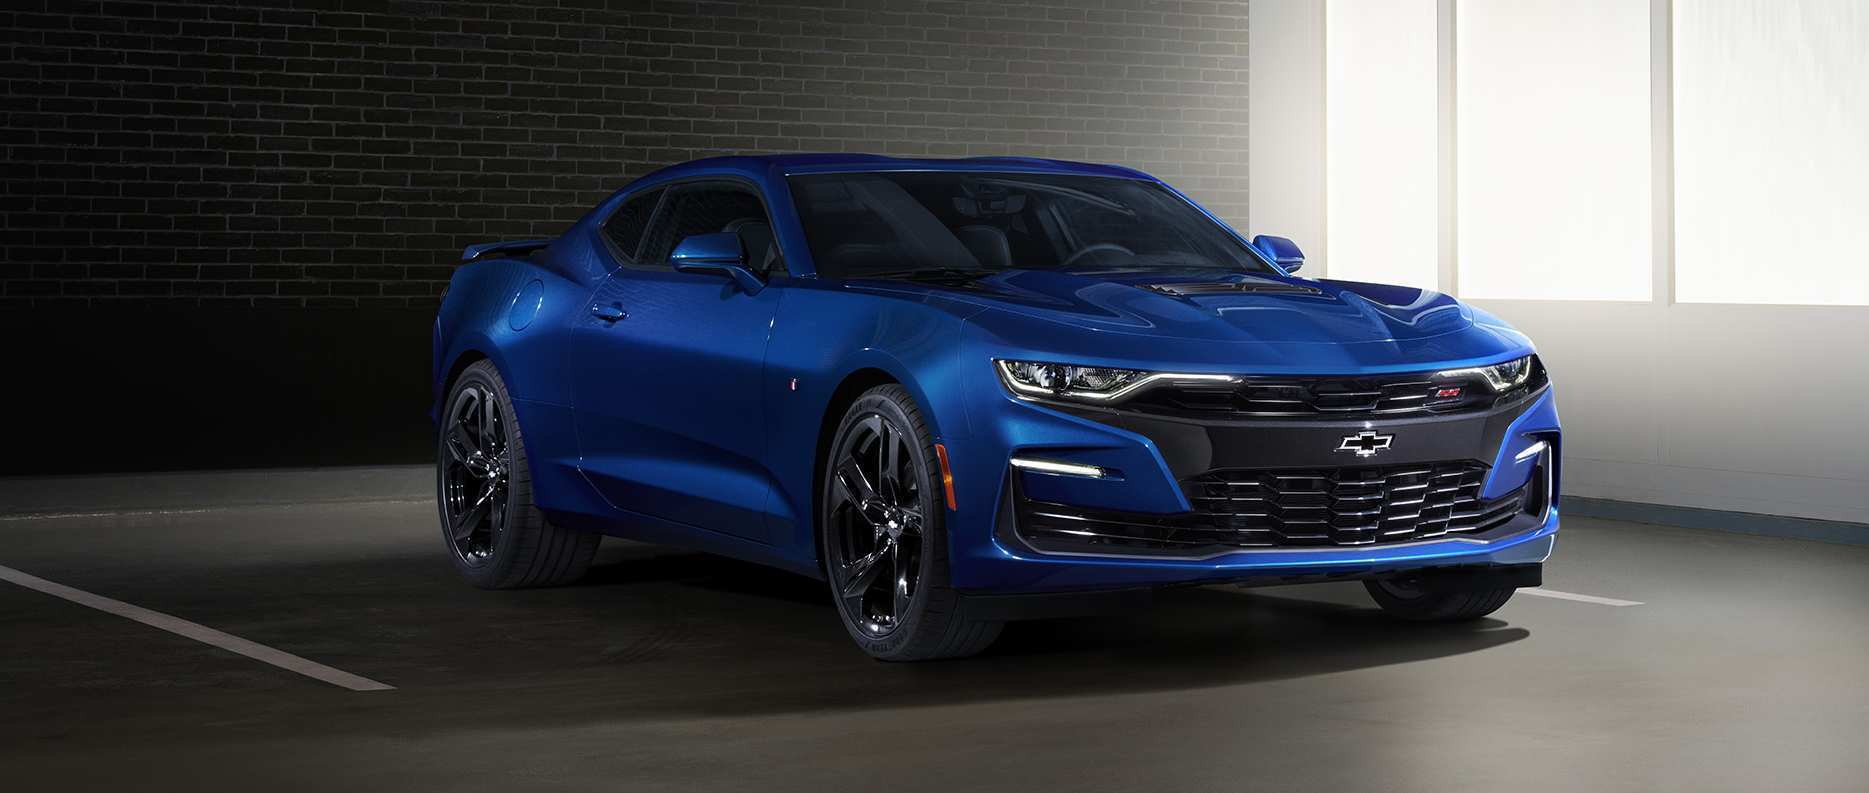 70 Gallery of 2019 Chevrolet Camaro Engine Specs and Review with 2019 Chevrolet Camaro Engine